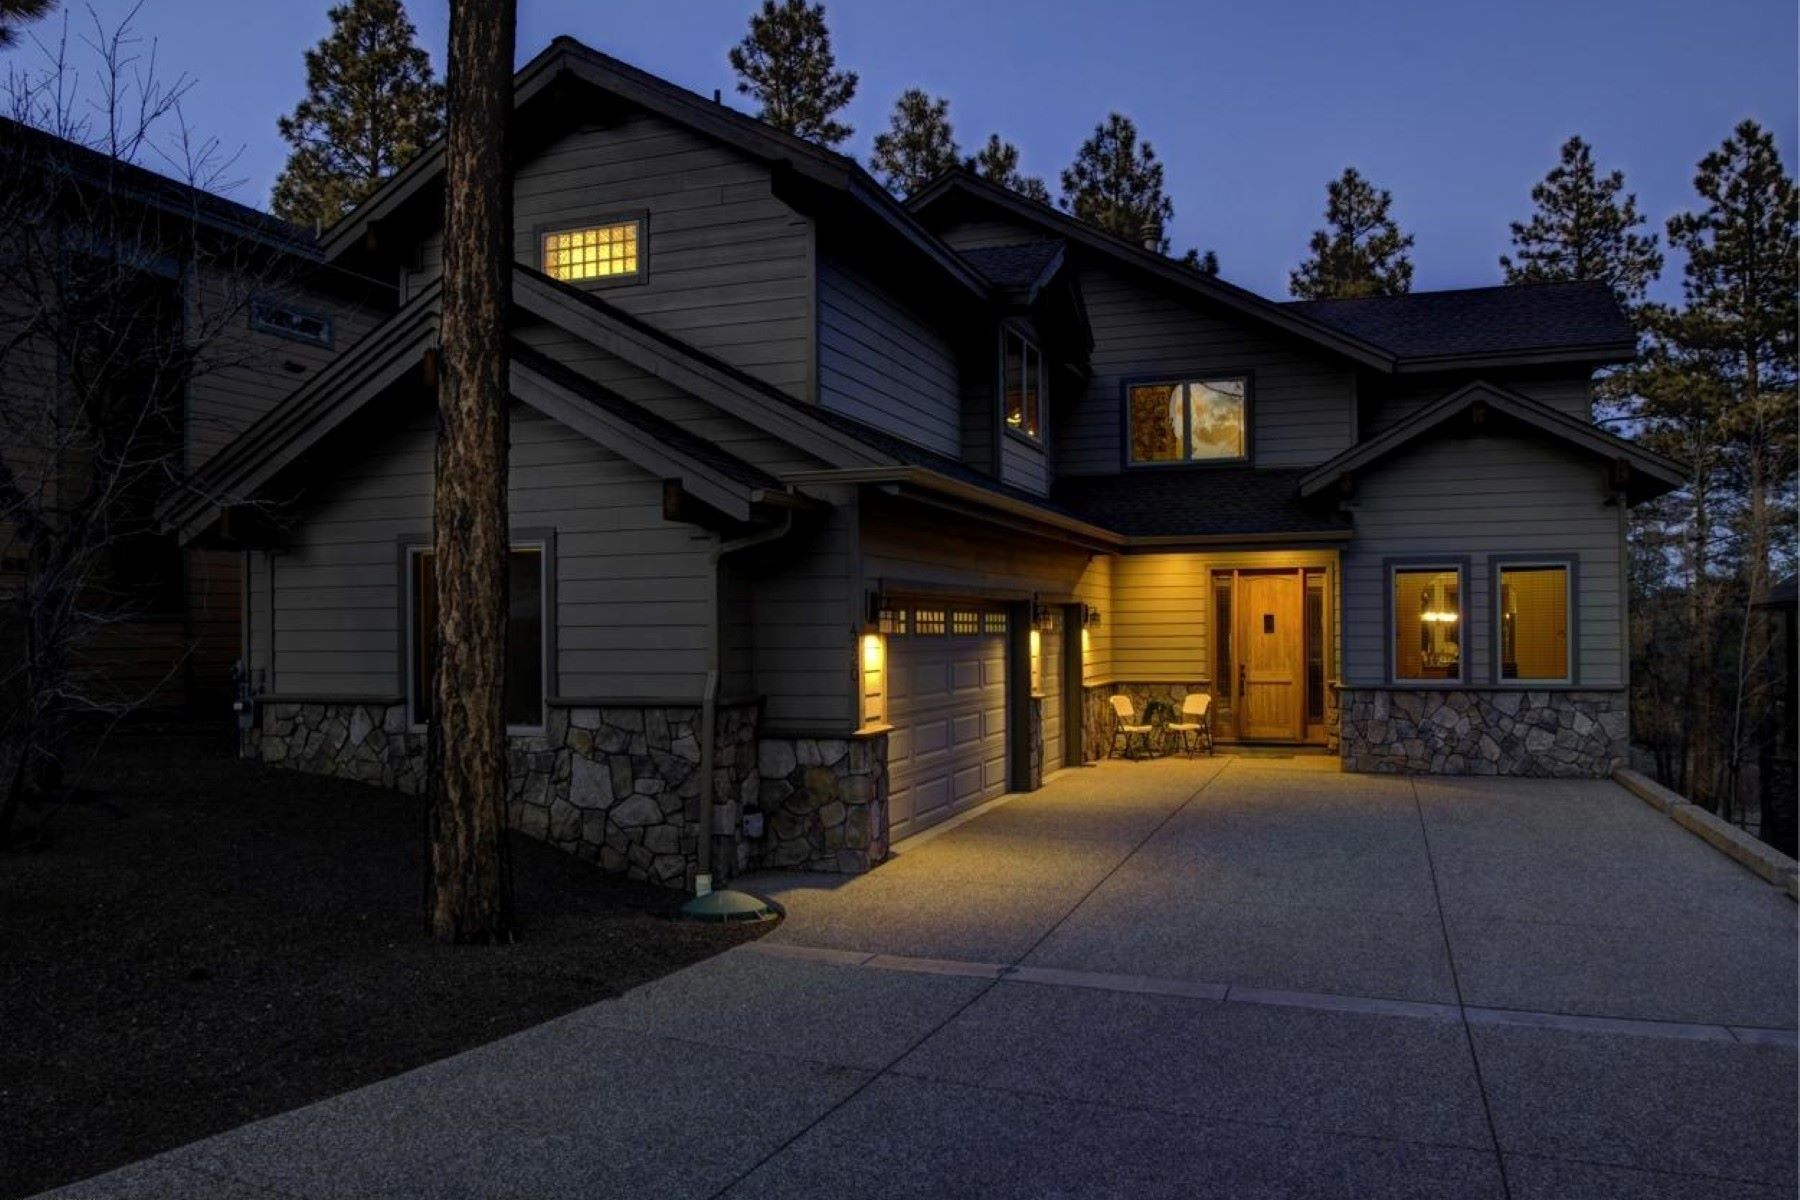 Moradia para Venda às Beautiful private residence home in Flagstaff Ranch 4220 S LARIAT LOOP Flagstaff, Arizona, 86005 Estados Unidos